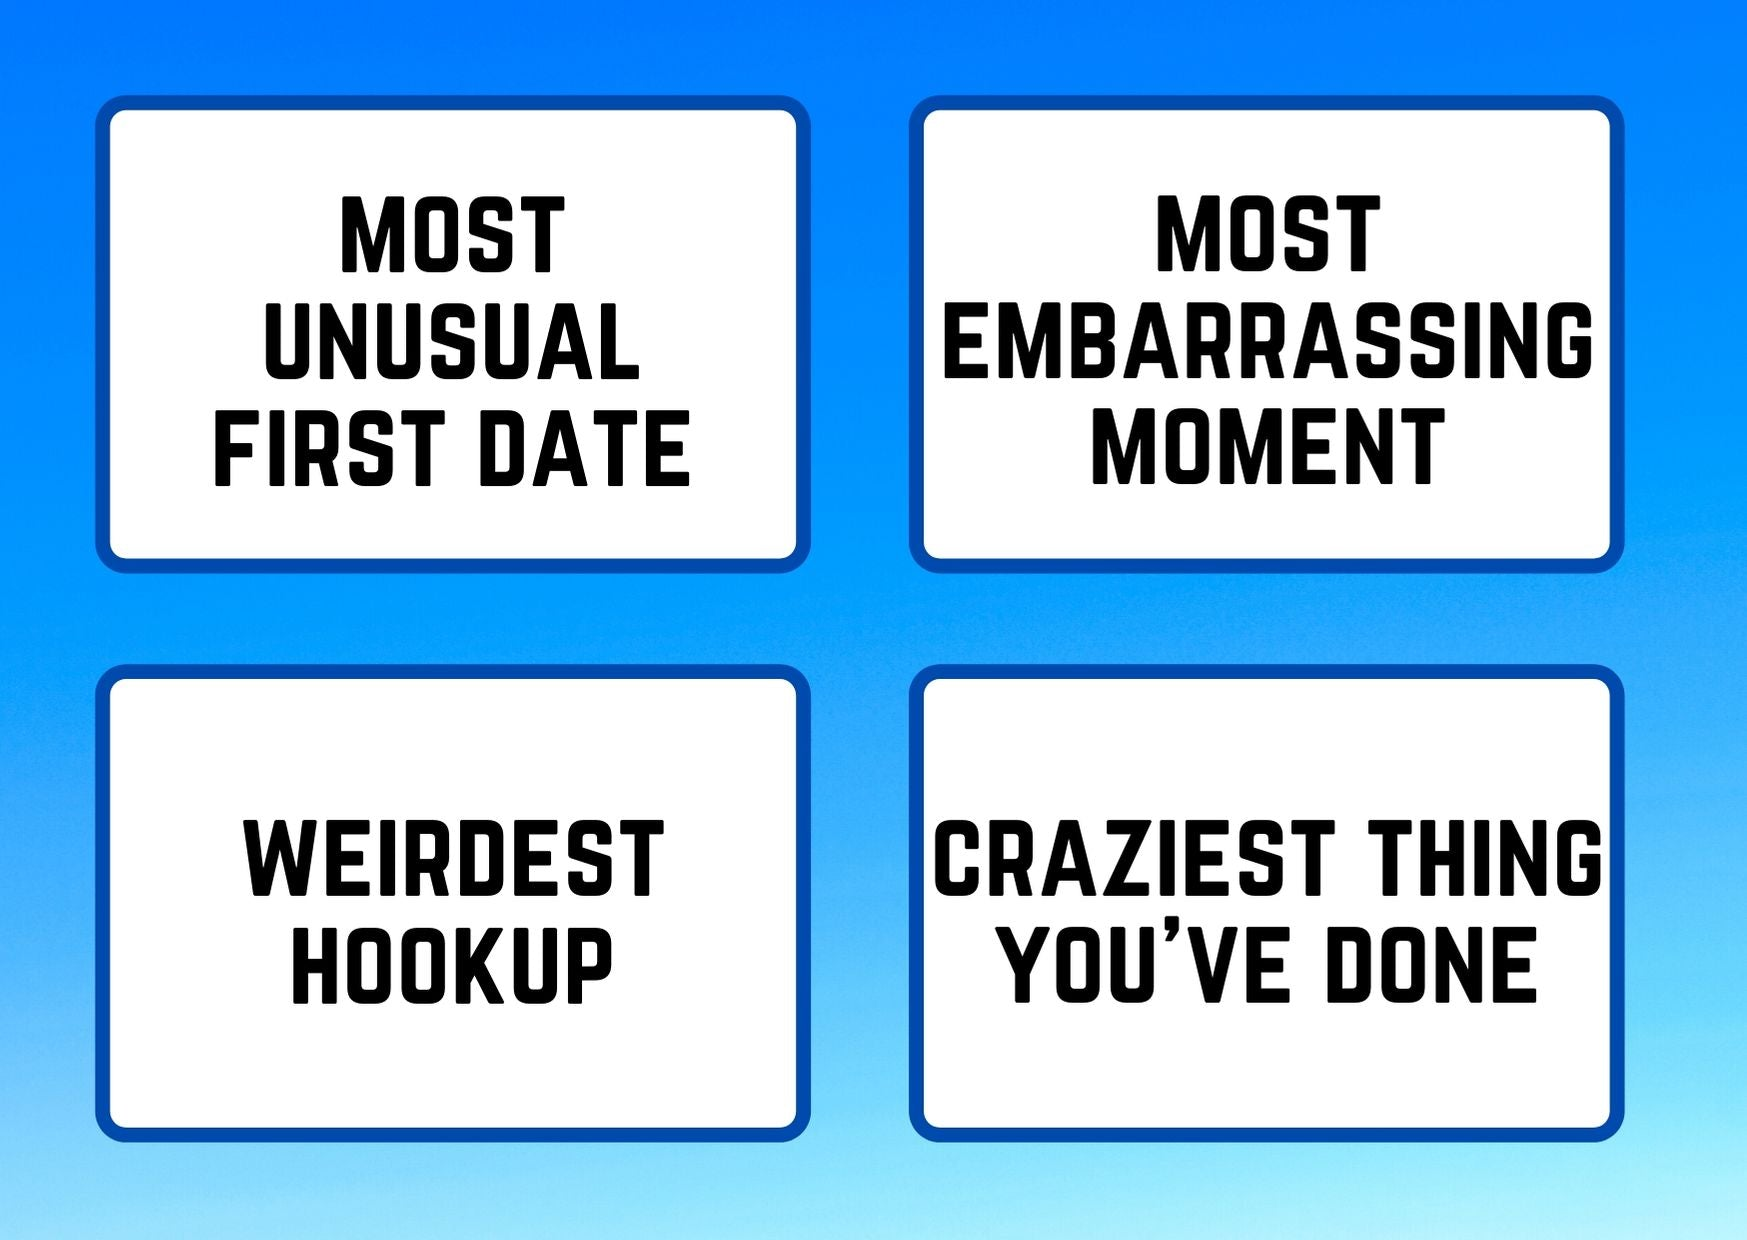 Best Story Contest submission categories: Unusual First Date, Embarassing Moment, Weirdest Hookup, Craziest Thing You've Done